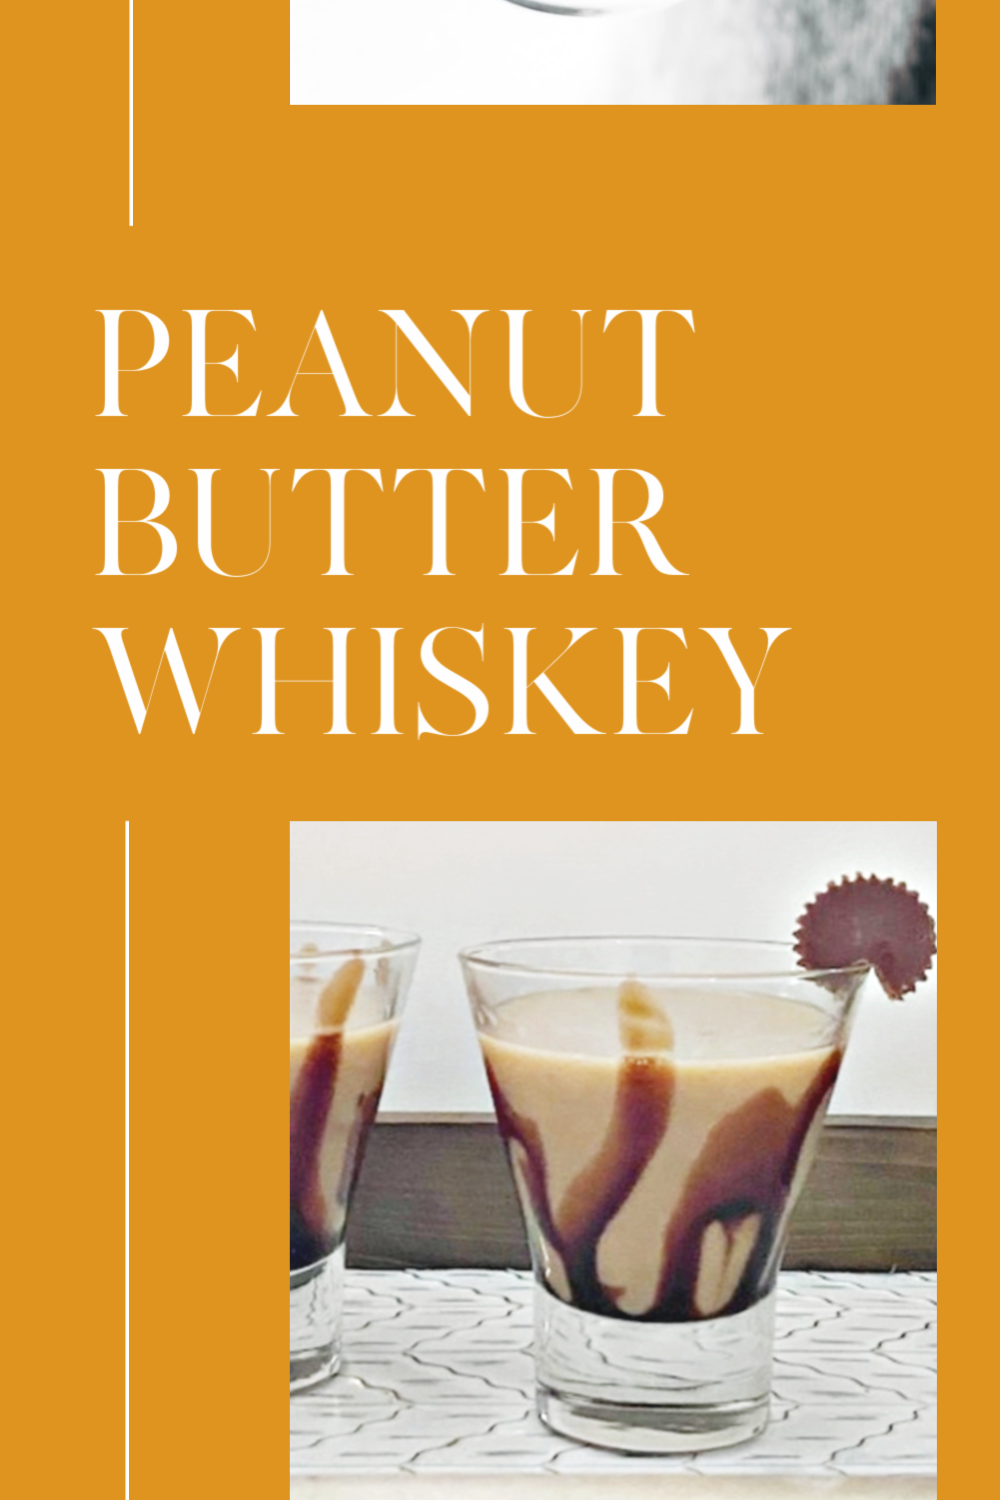 peanut butter whiskey pin image